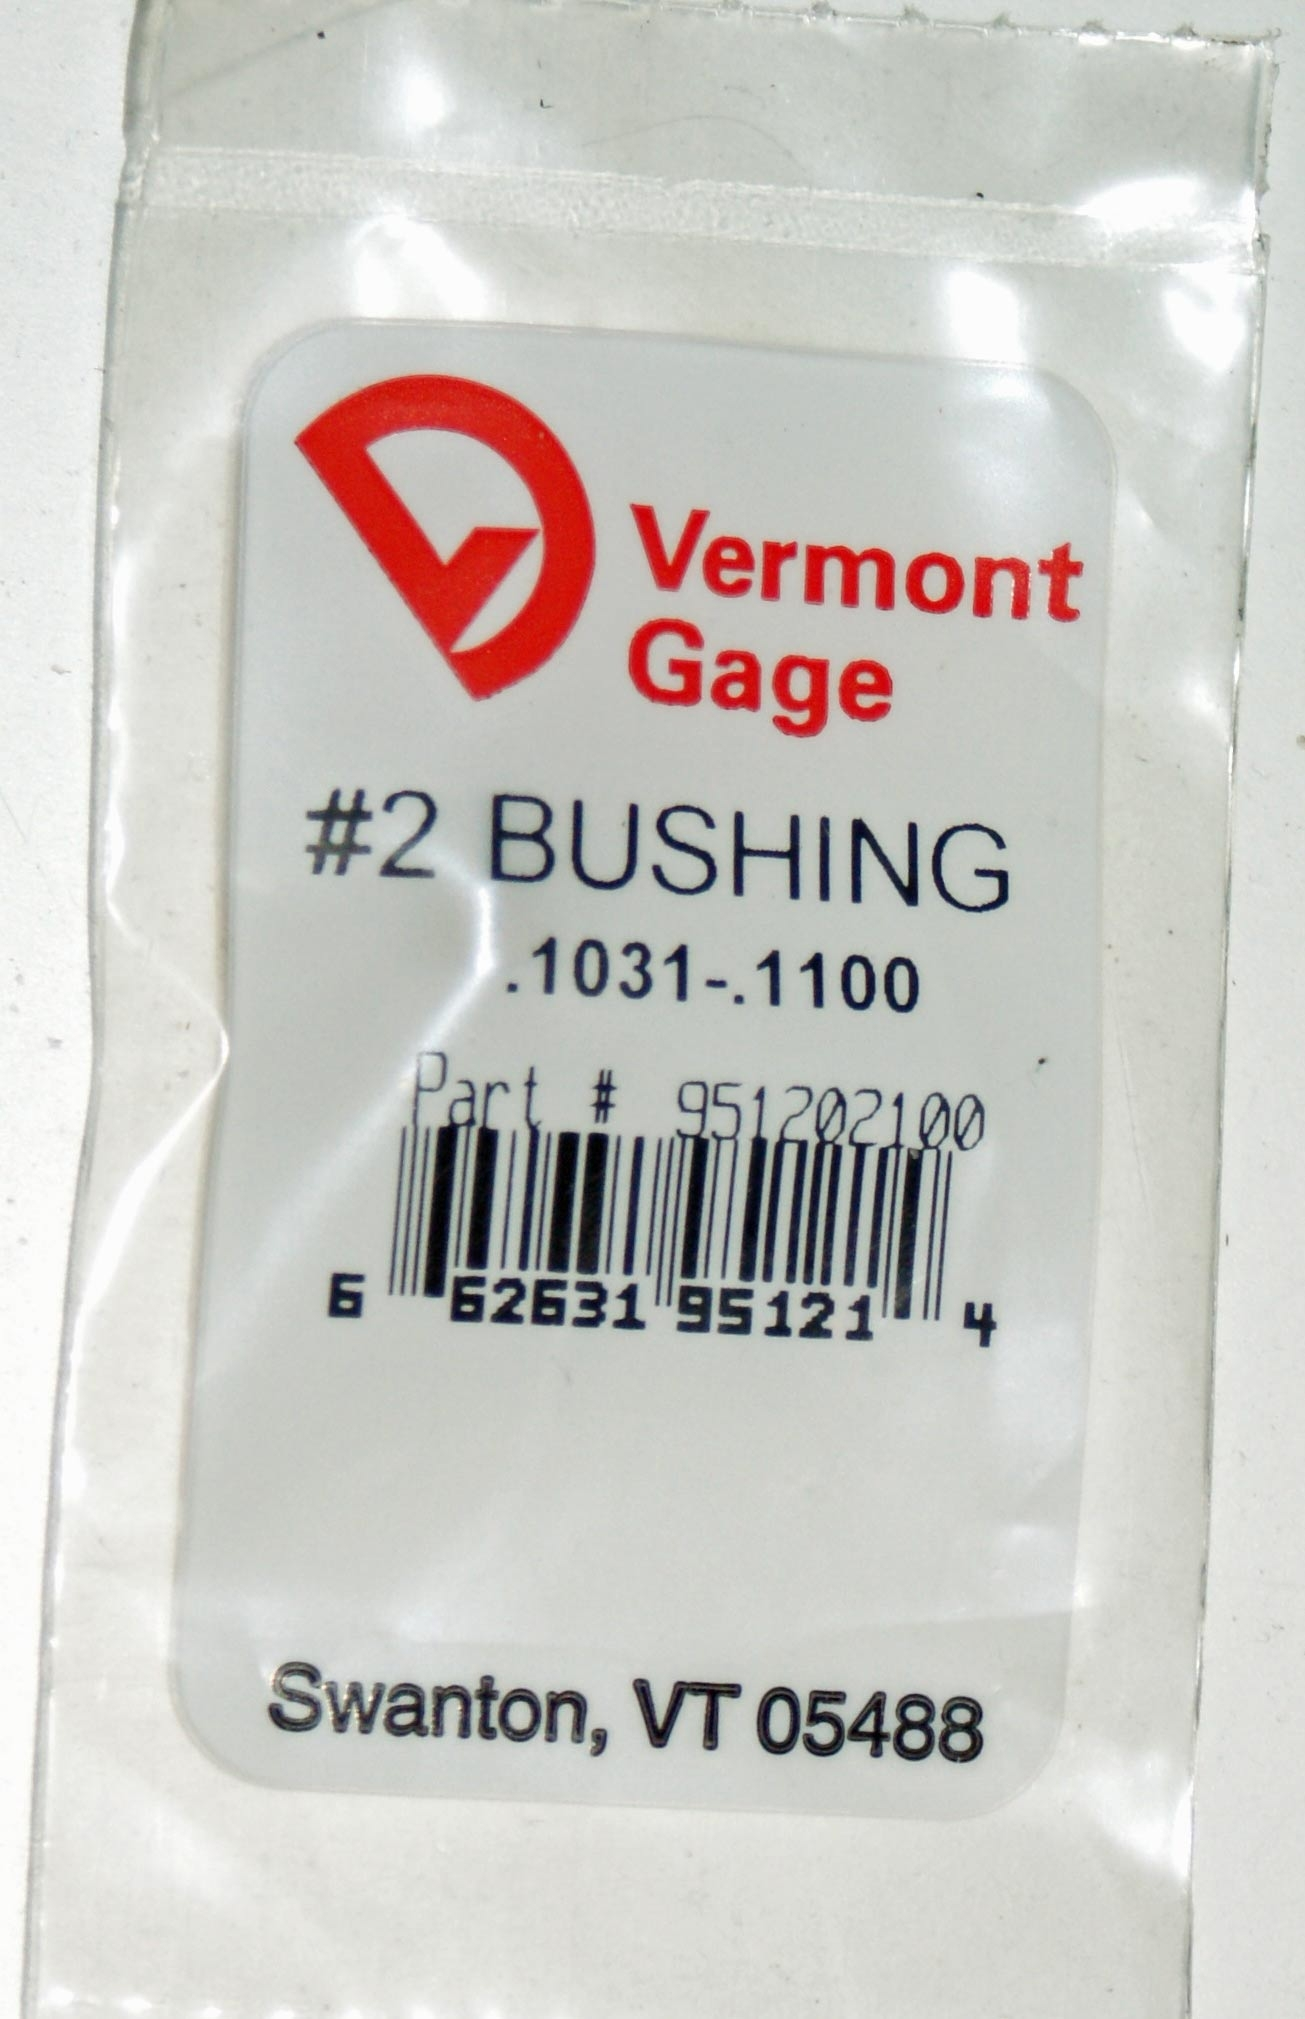 "Vermont Gage .1031 - .1100"" #2 Bushing / Collet Pin"